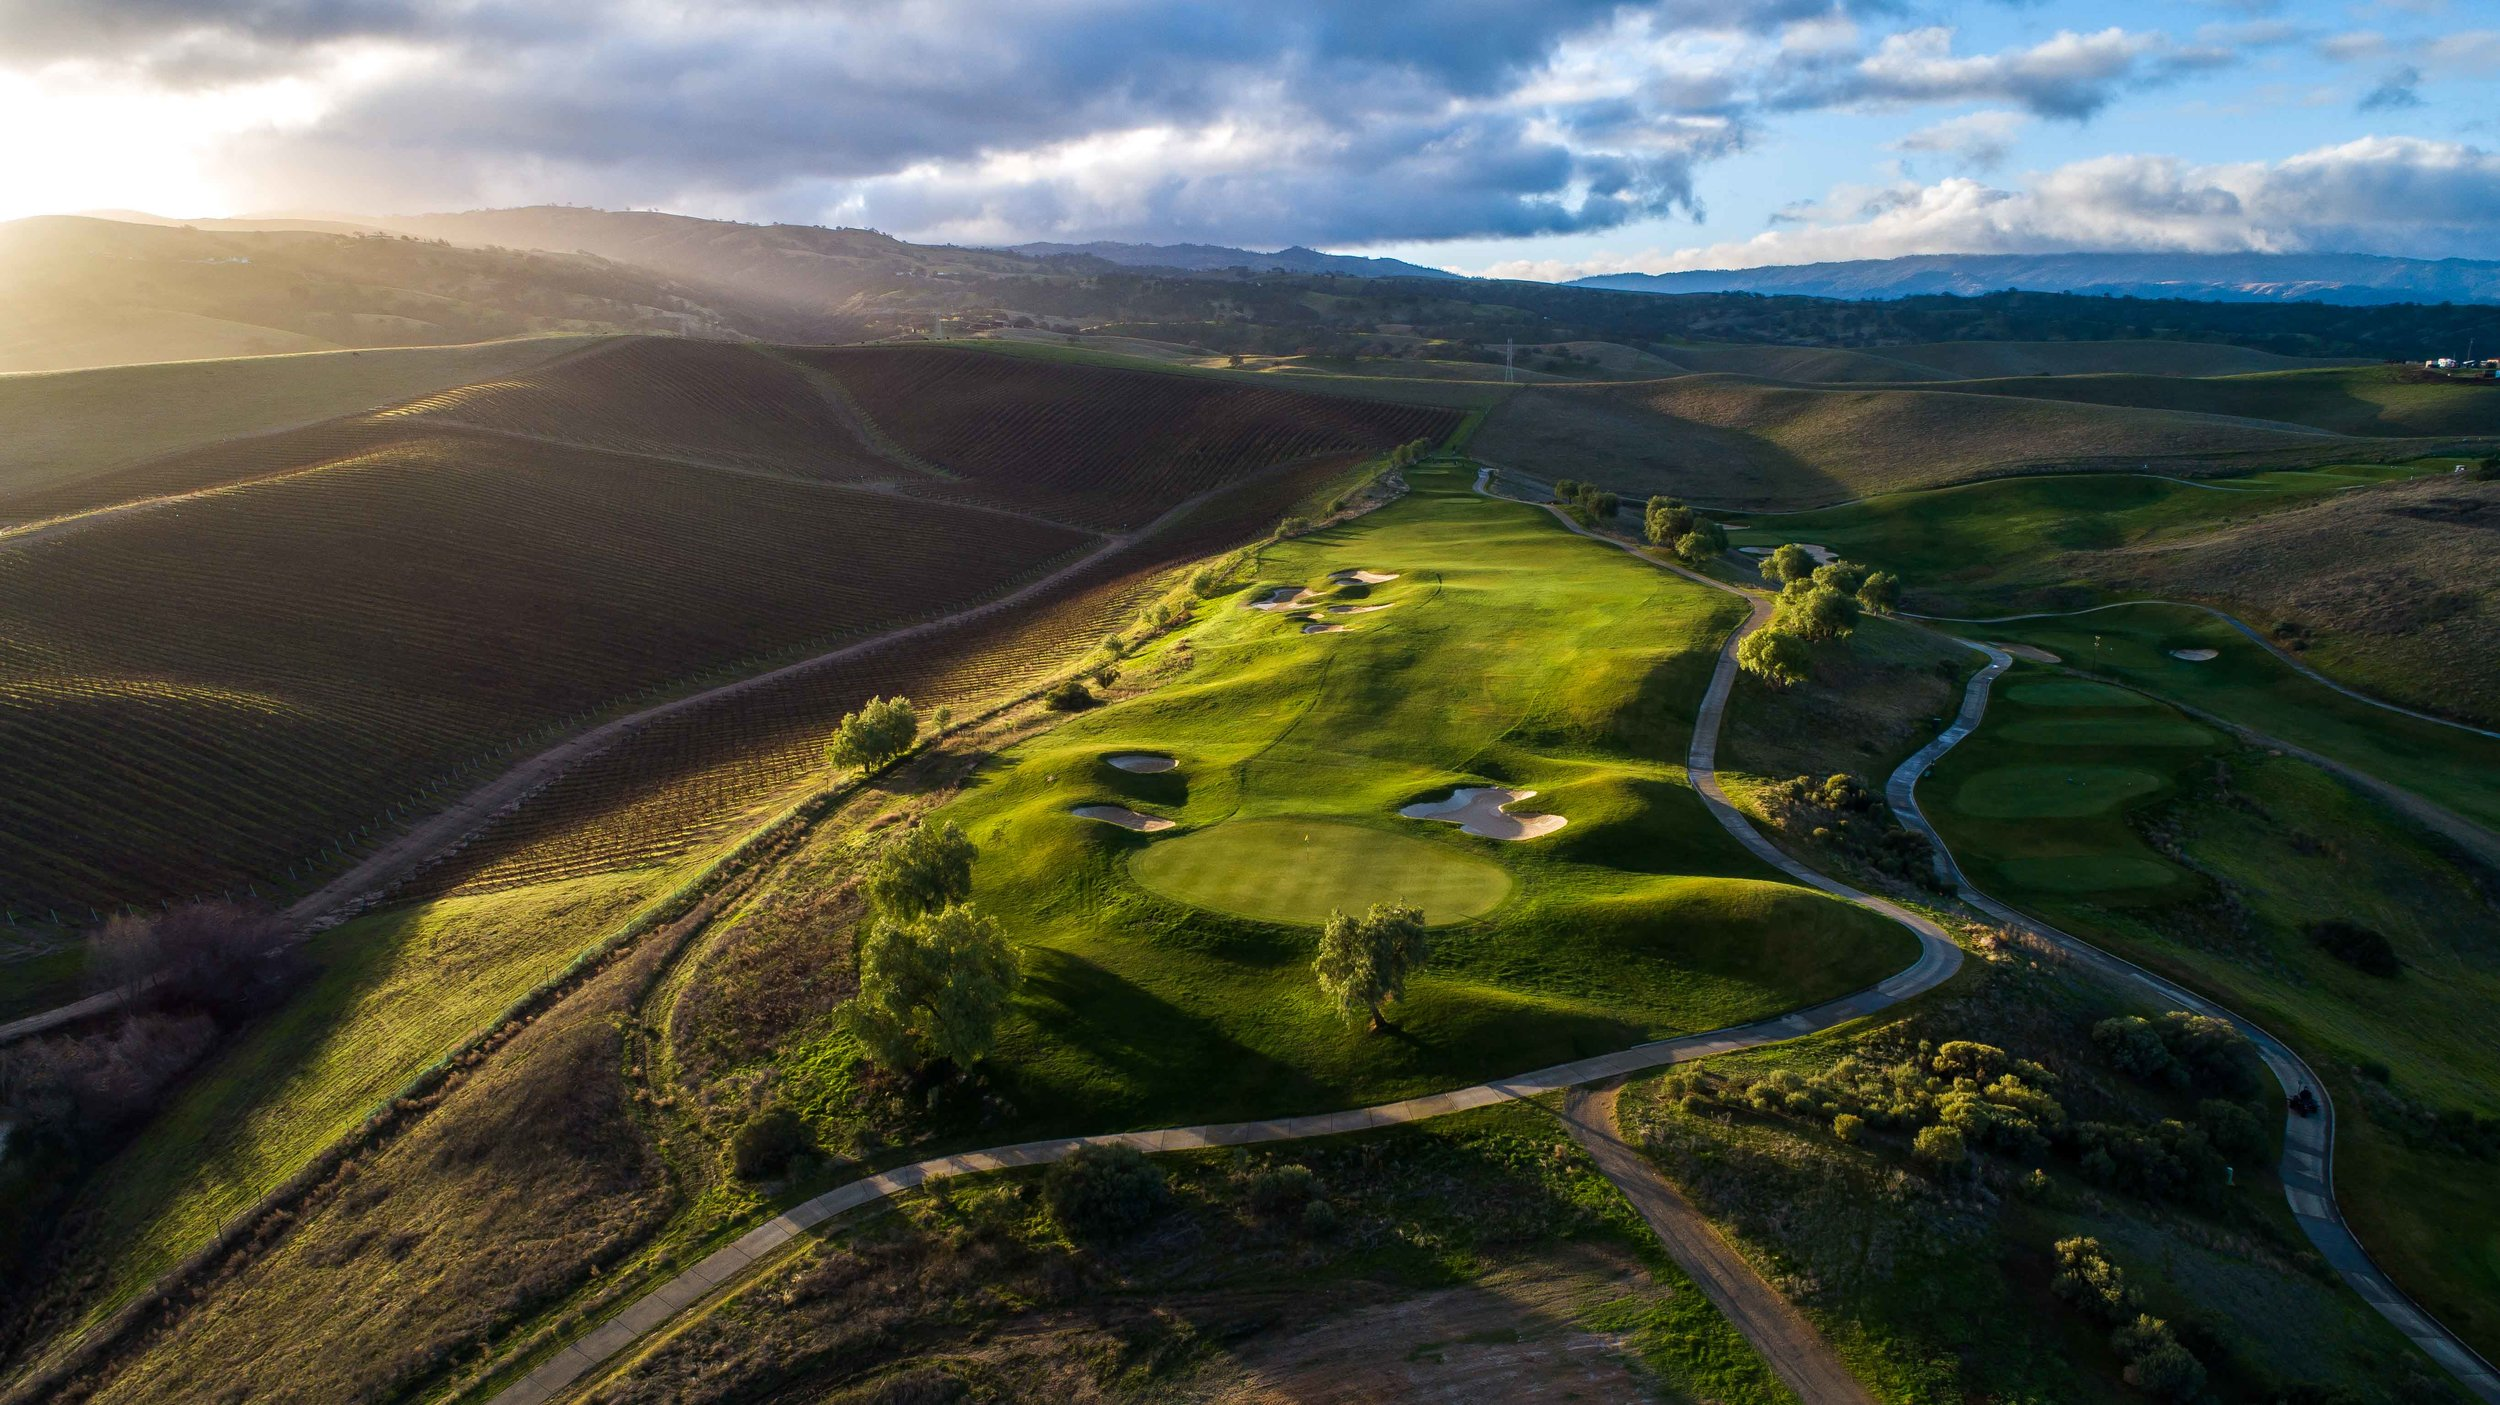 The 4th hole on Poppy Ridge's Chardonnay nine.